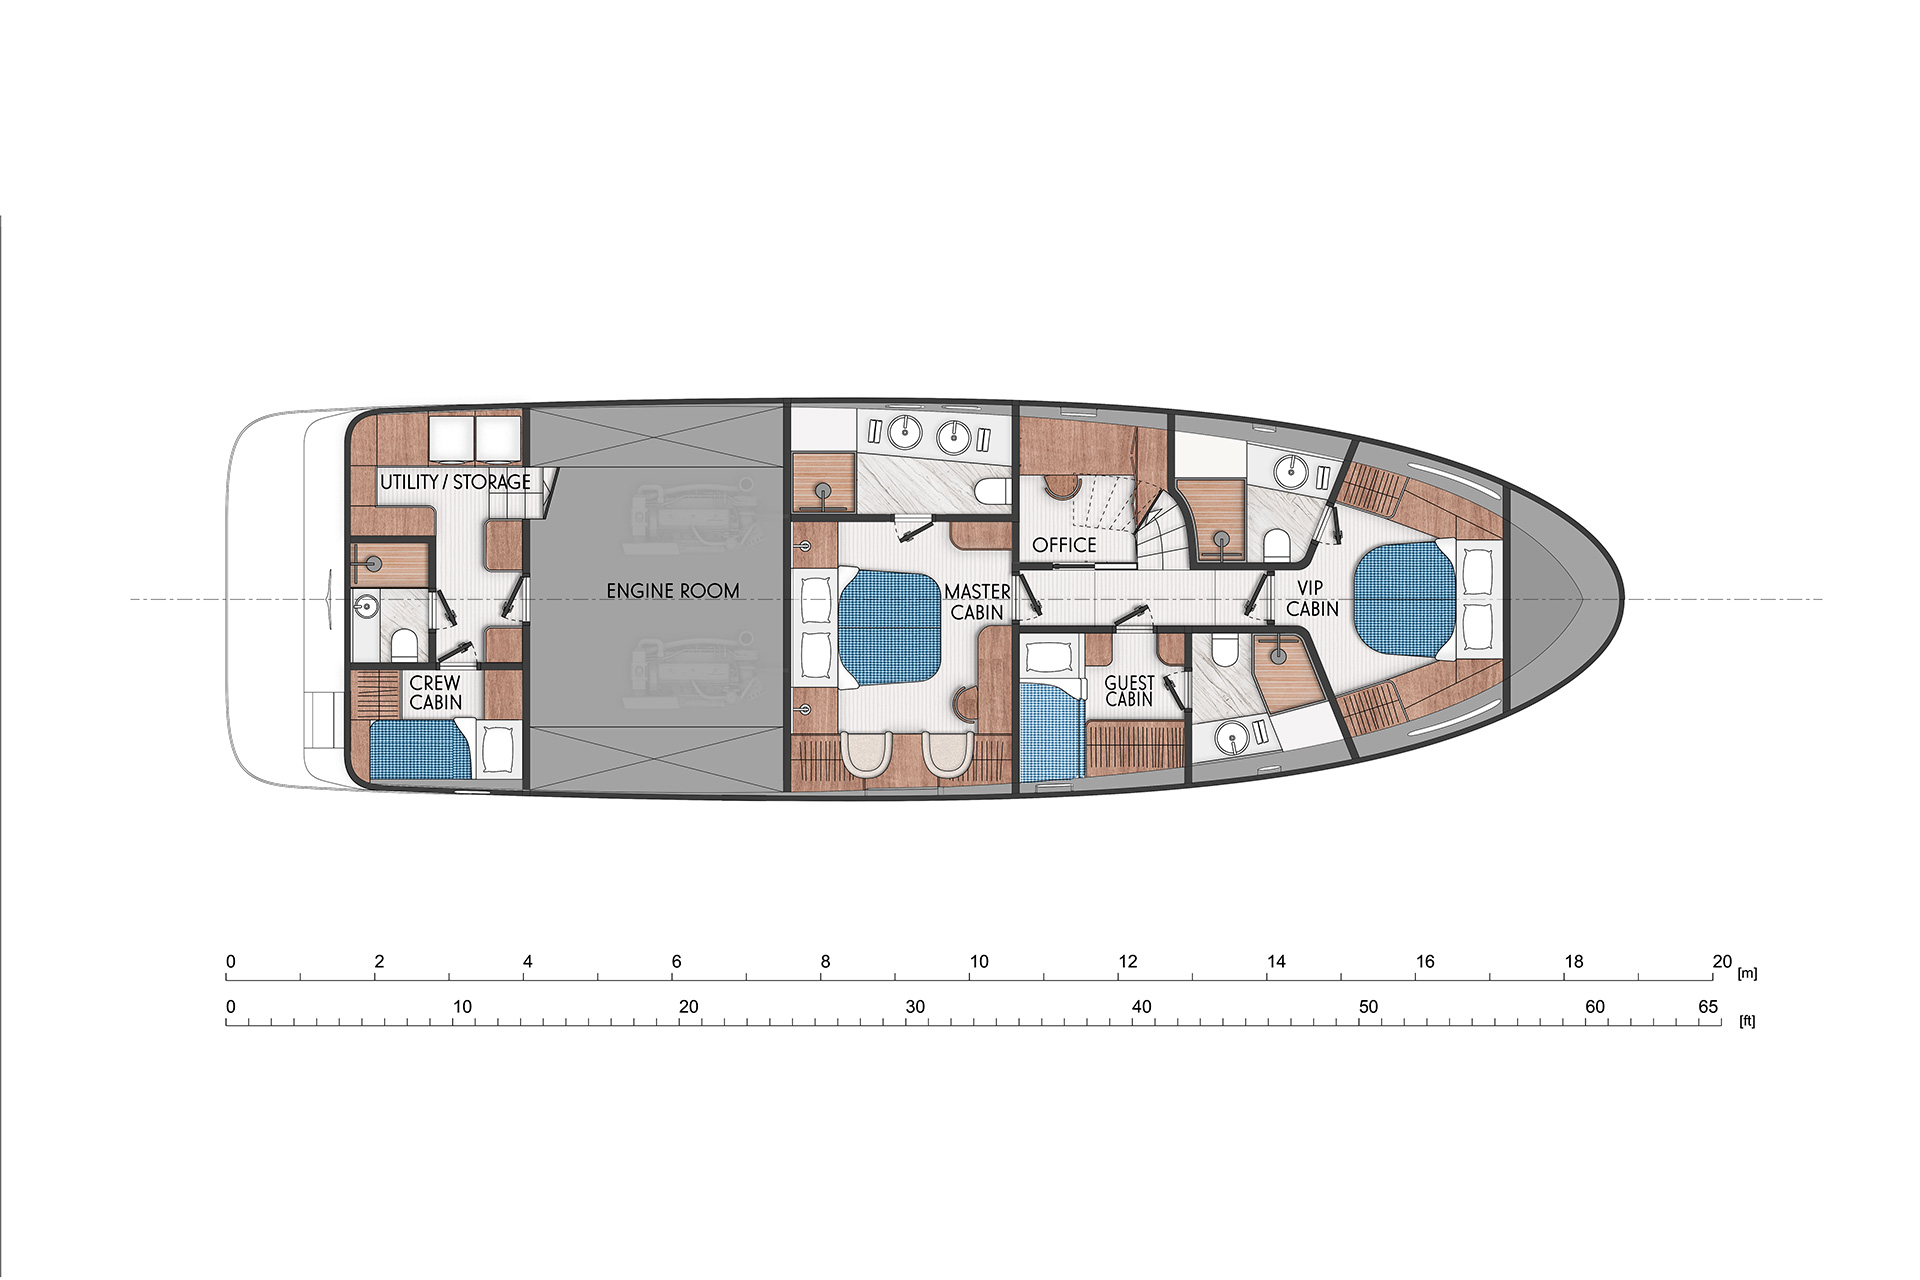 Three cabins with ensuite bathrooms. Version with bigger office on the port side.